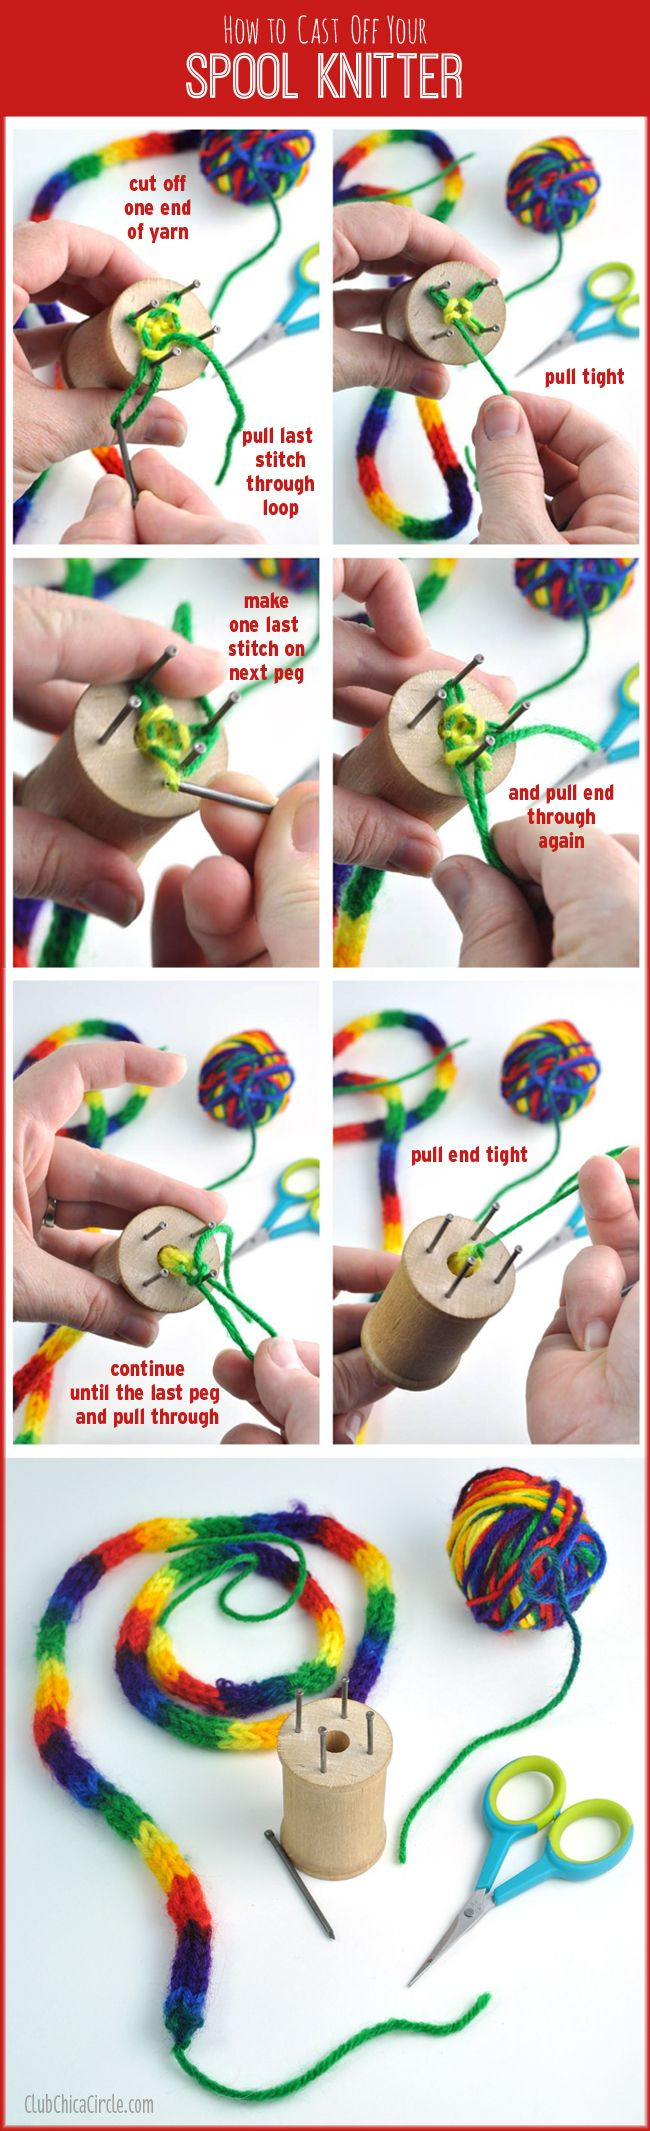 How to Cast Off your homemade Spool Knitter